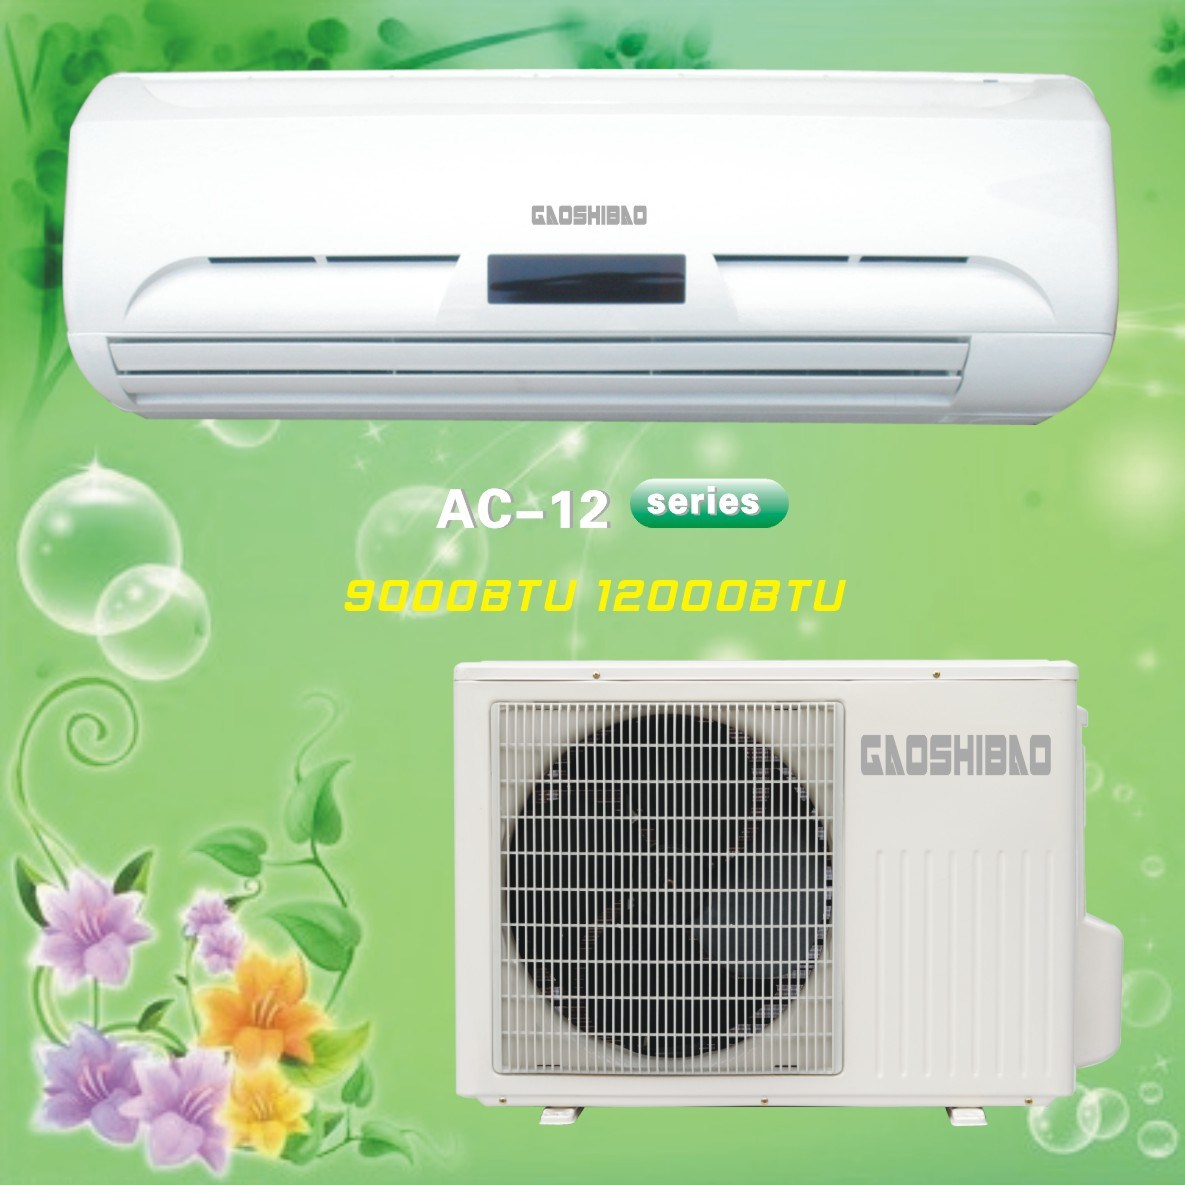 Split Type Air Conditioning Units New Brand Compressor Air Conditioner #B8AD13